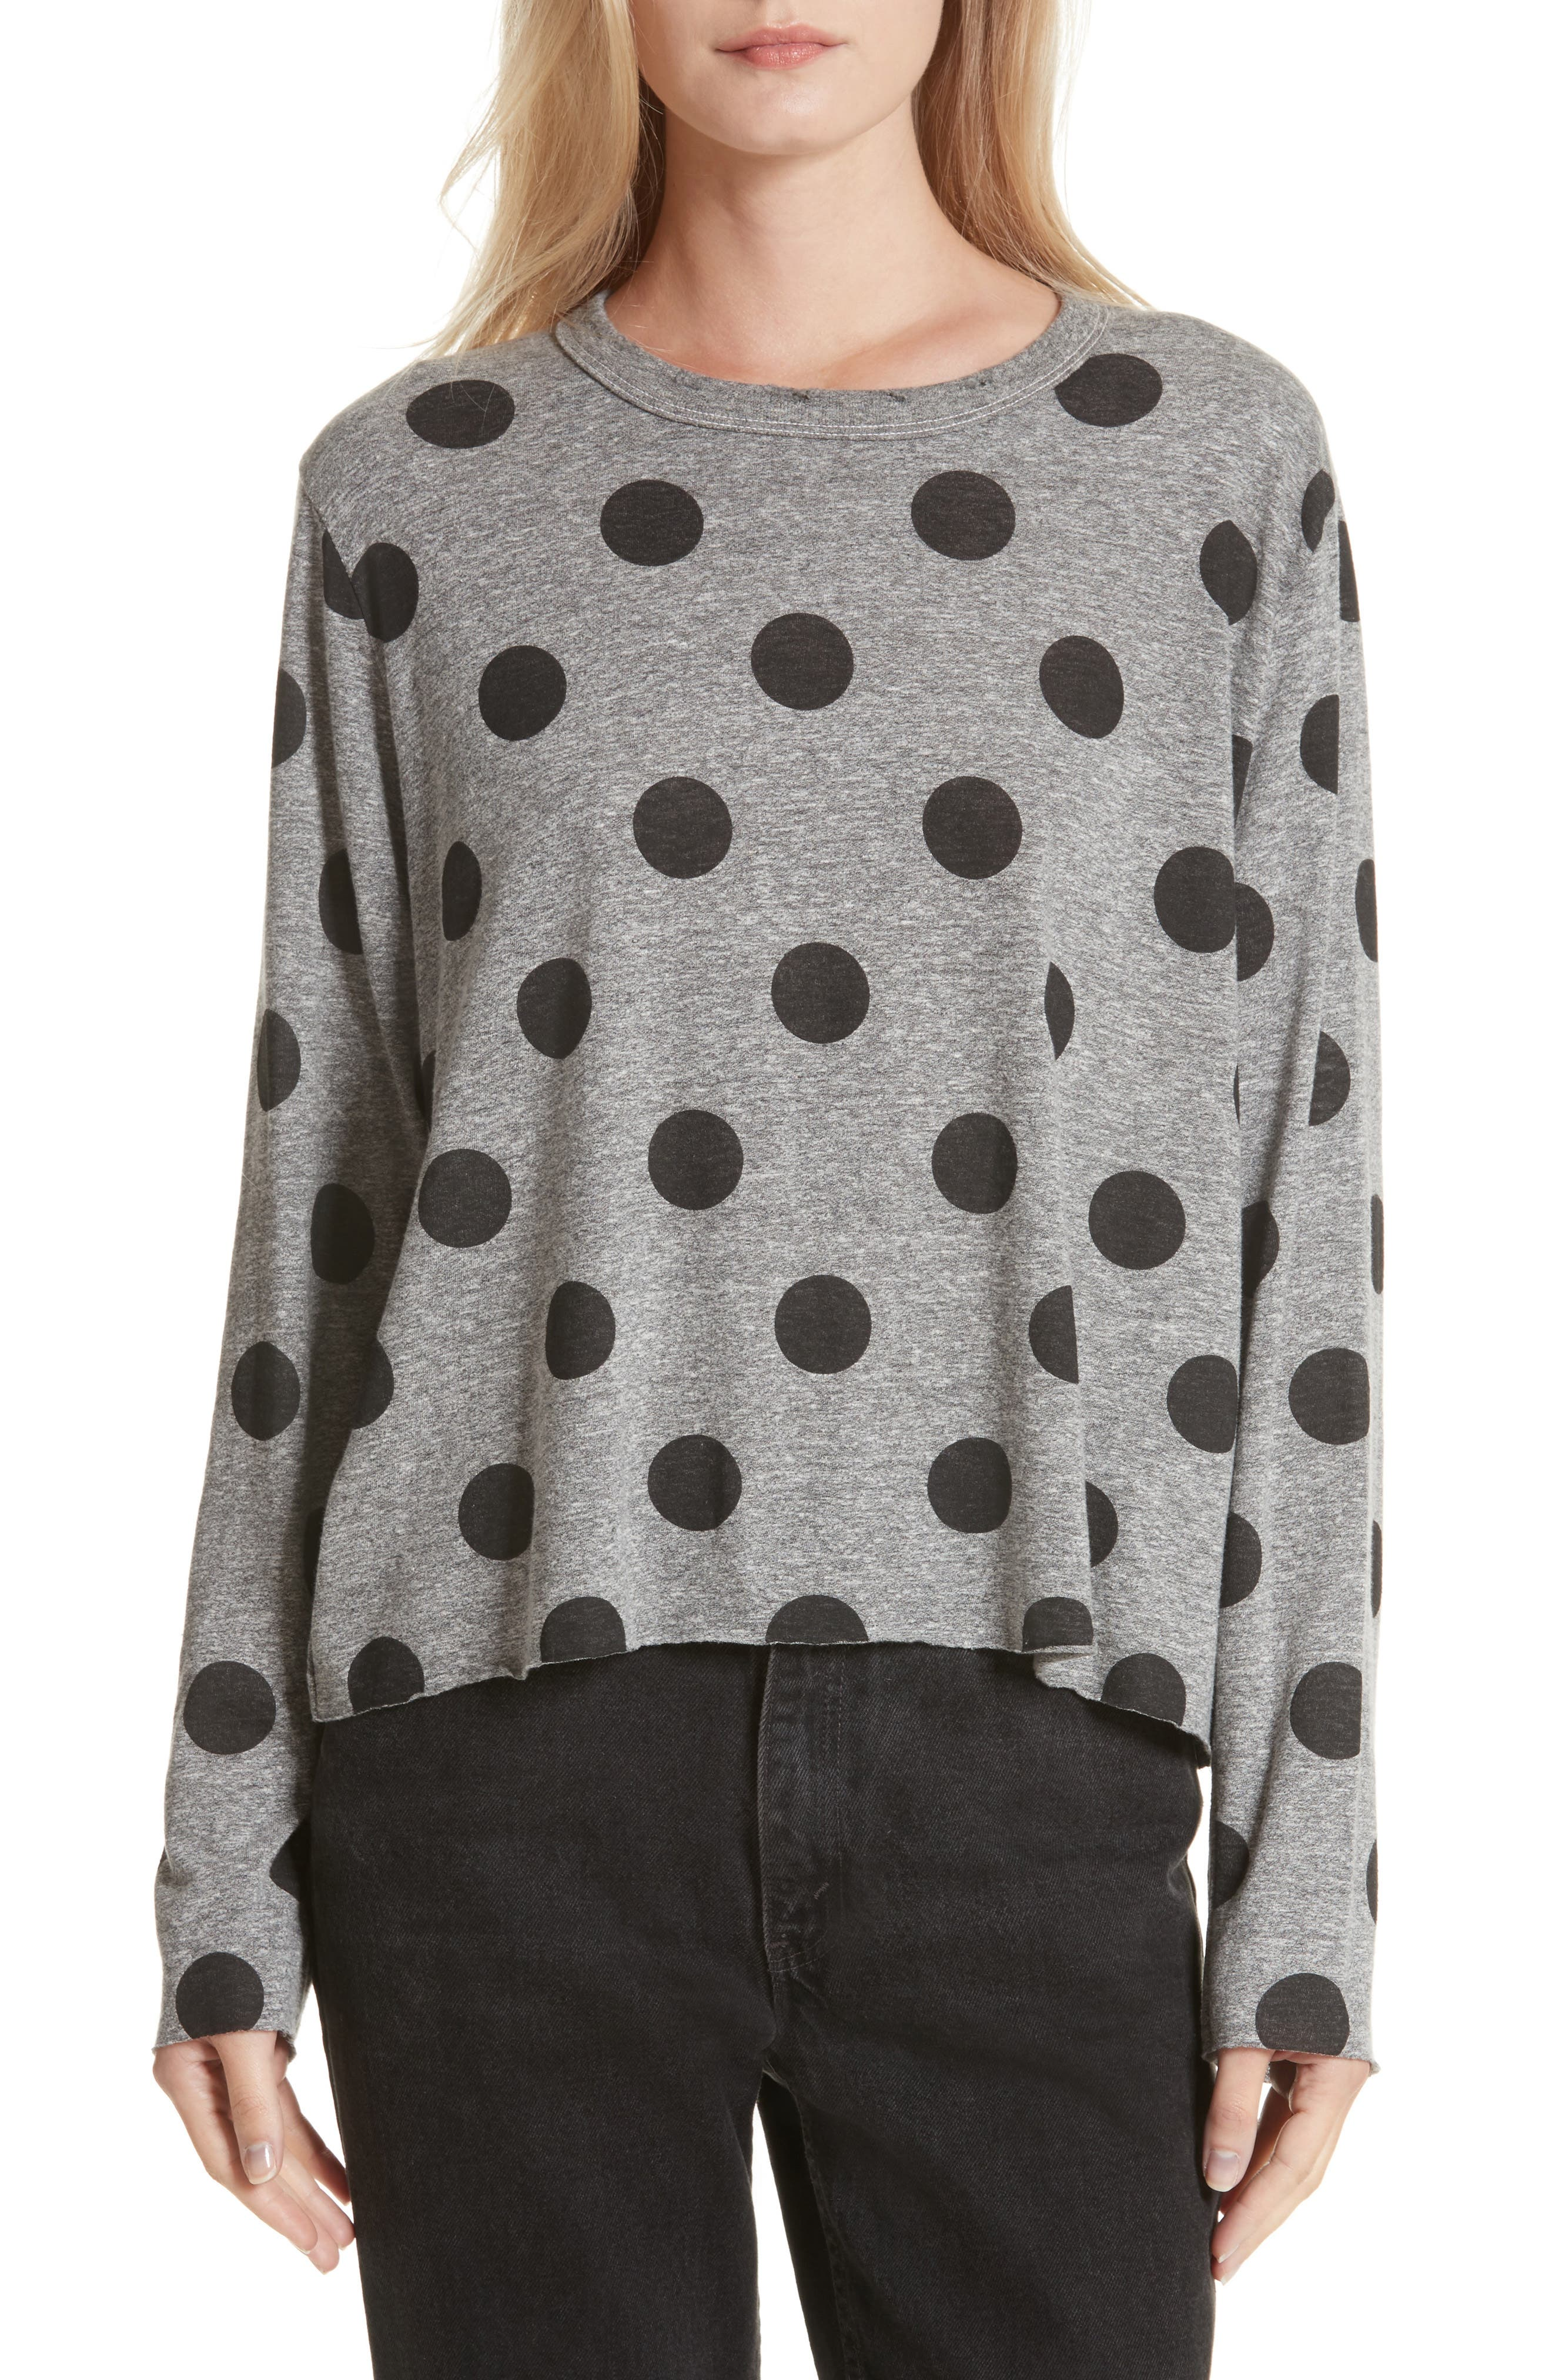 THE GREAT. The Long Sleeve Crop Dot Print Tee